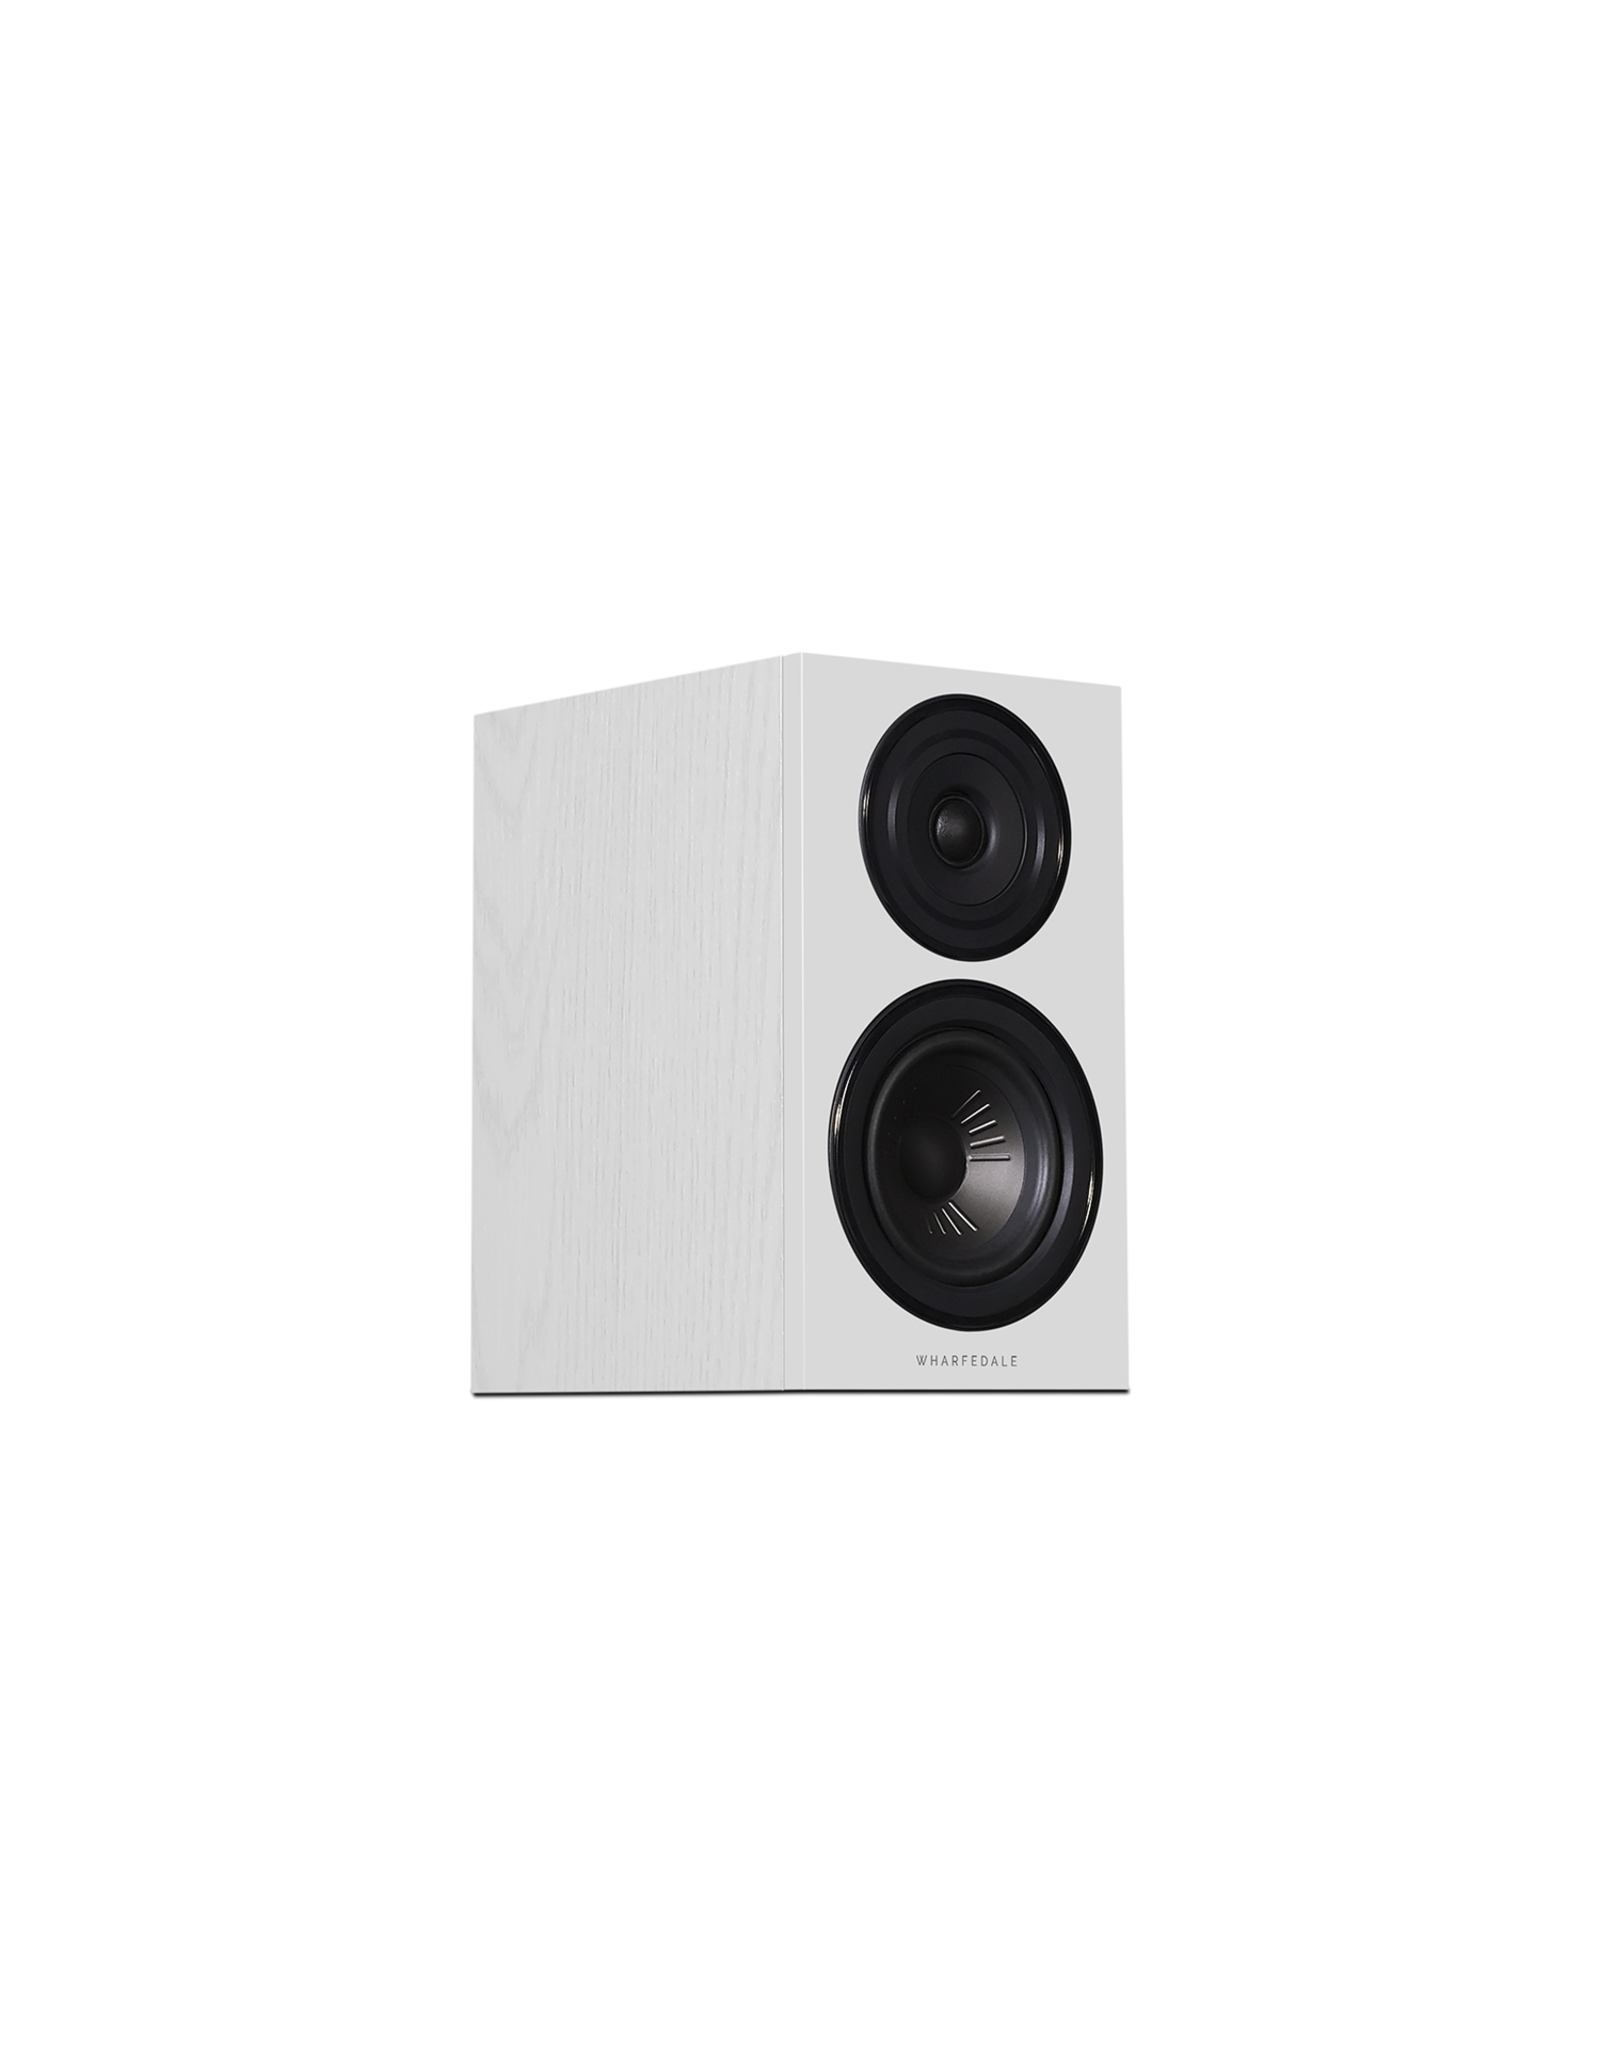 Wharfedale Wharfedale Diamond 12.1 Bookshelf Speakers White OPEN STOCK